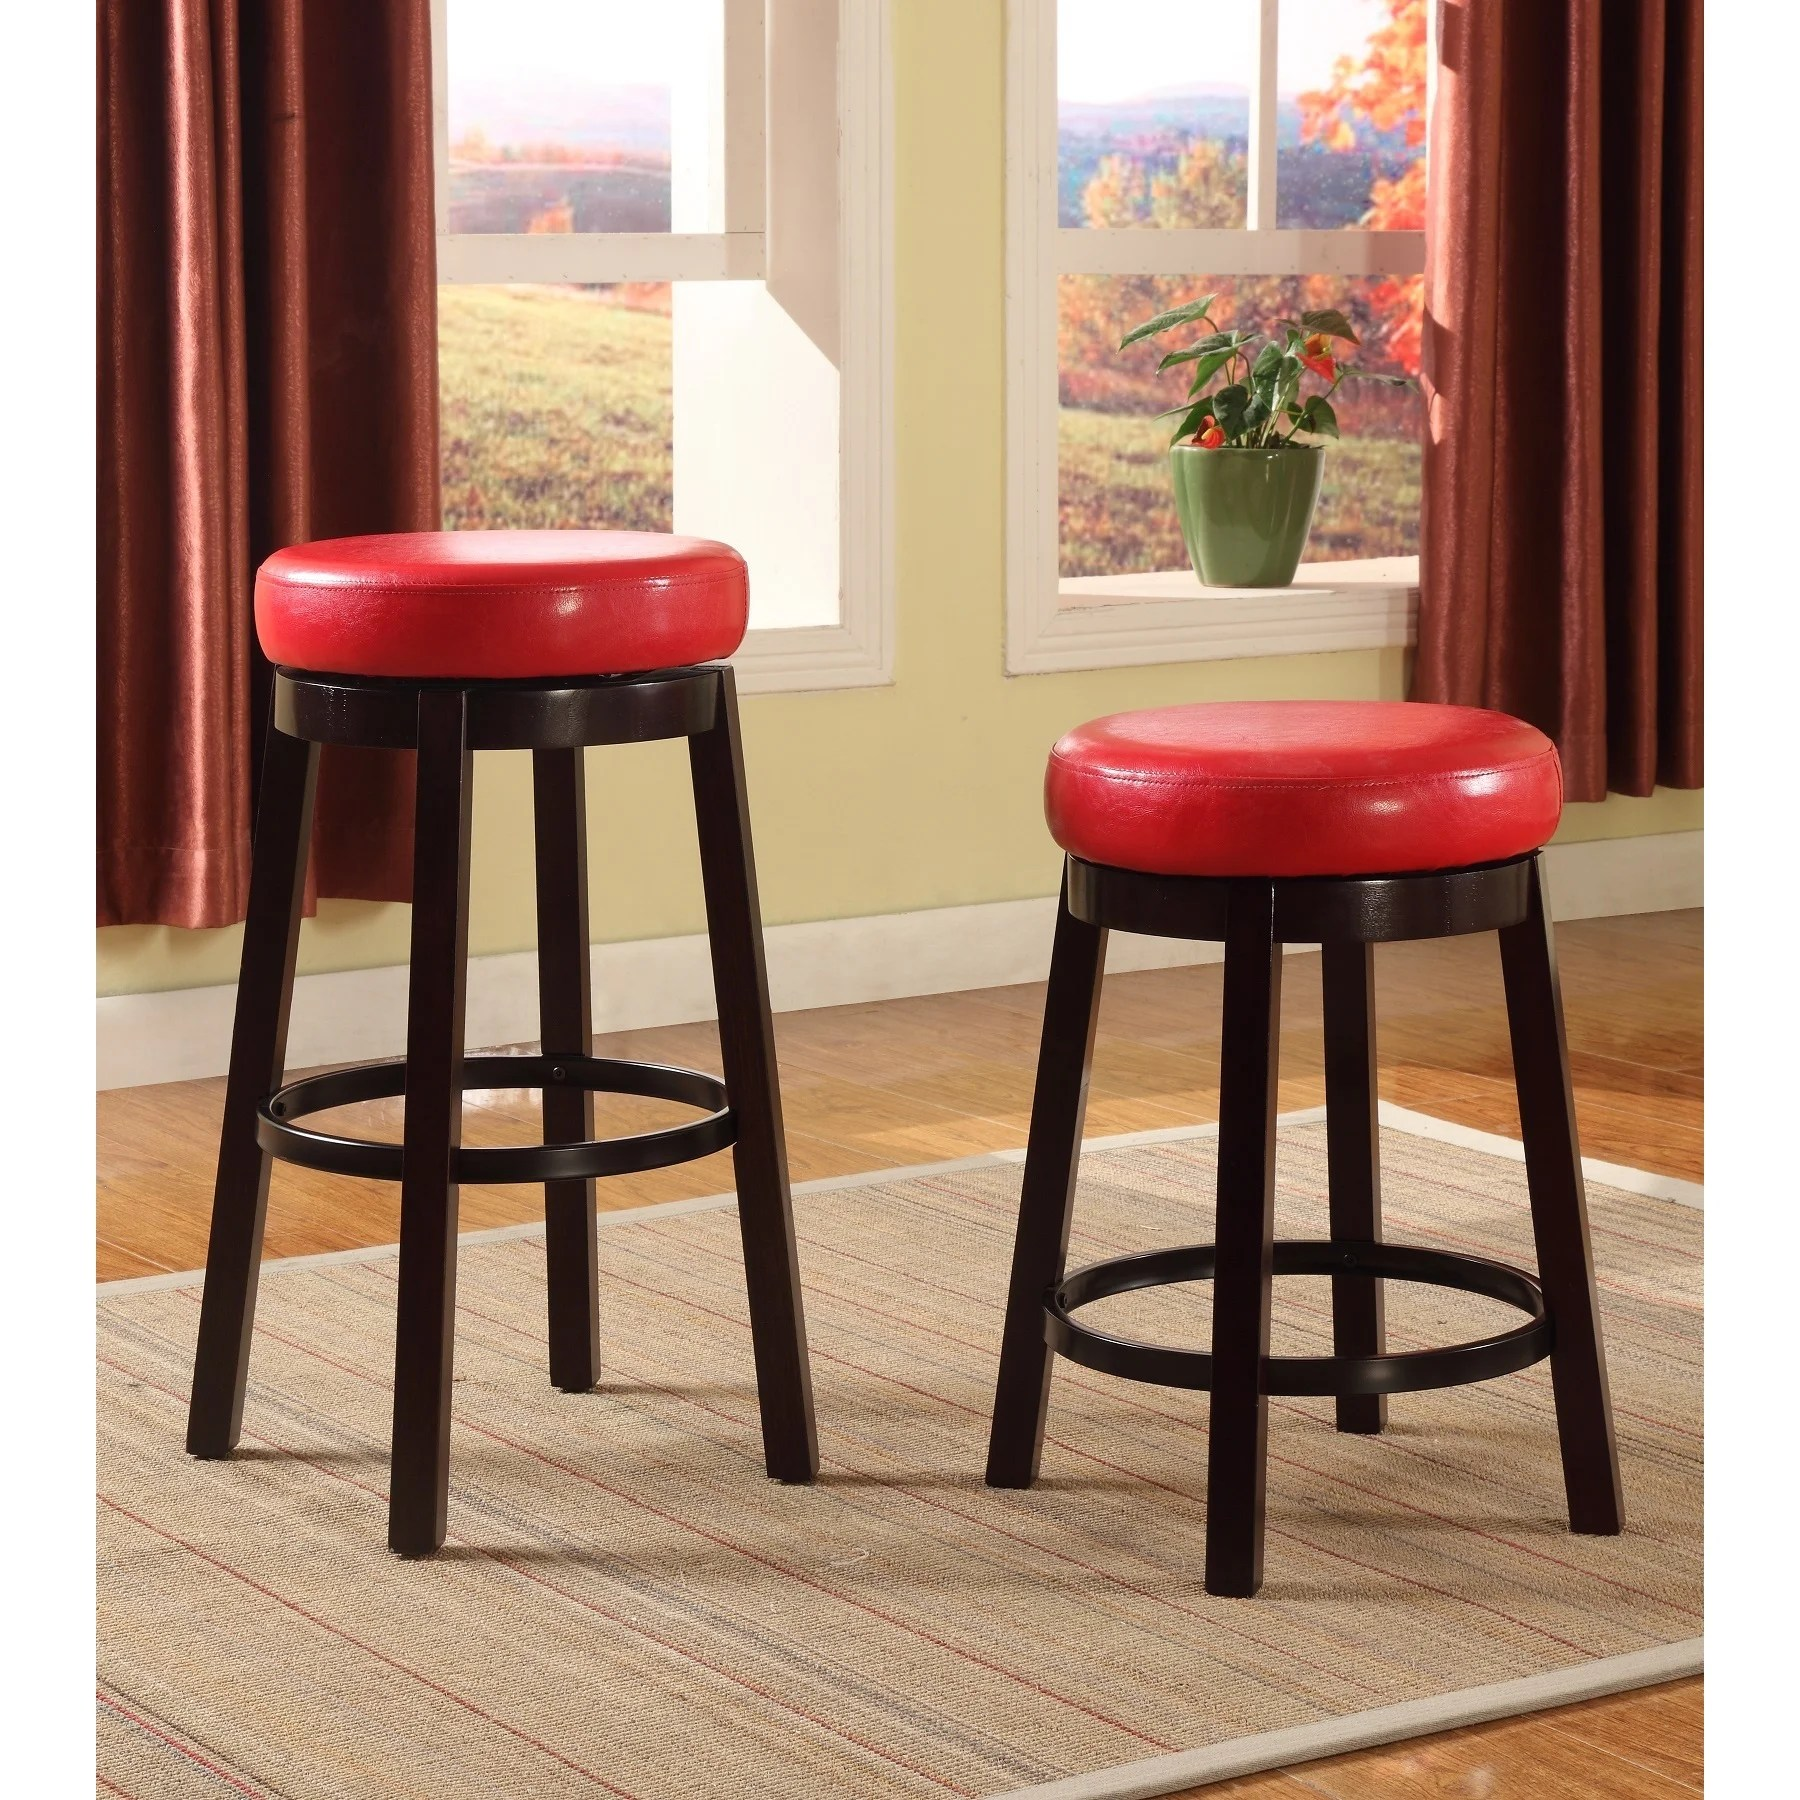 Metal Counter Height Chairs Swivel Counter Height Bar Stool With Leather Seat And